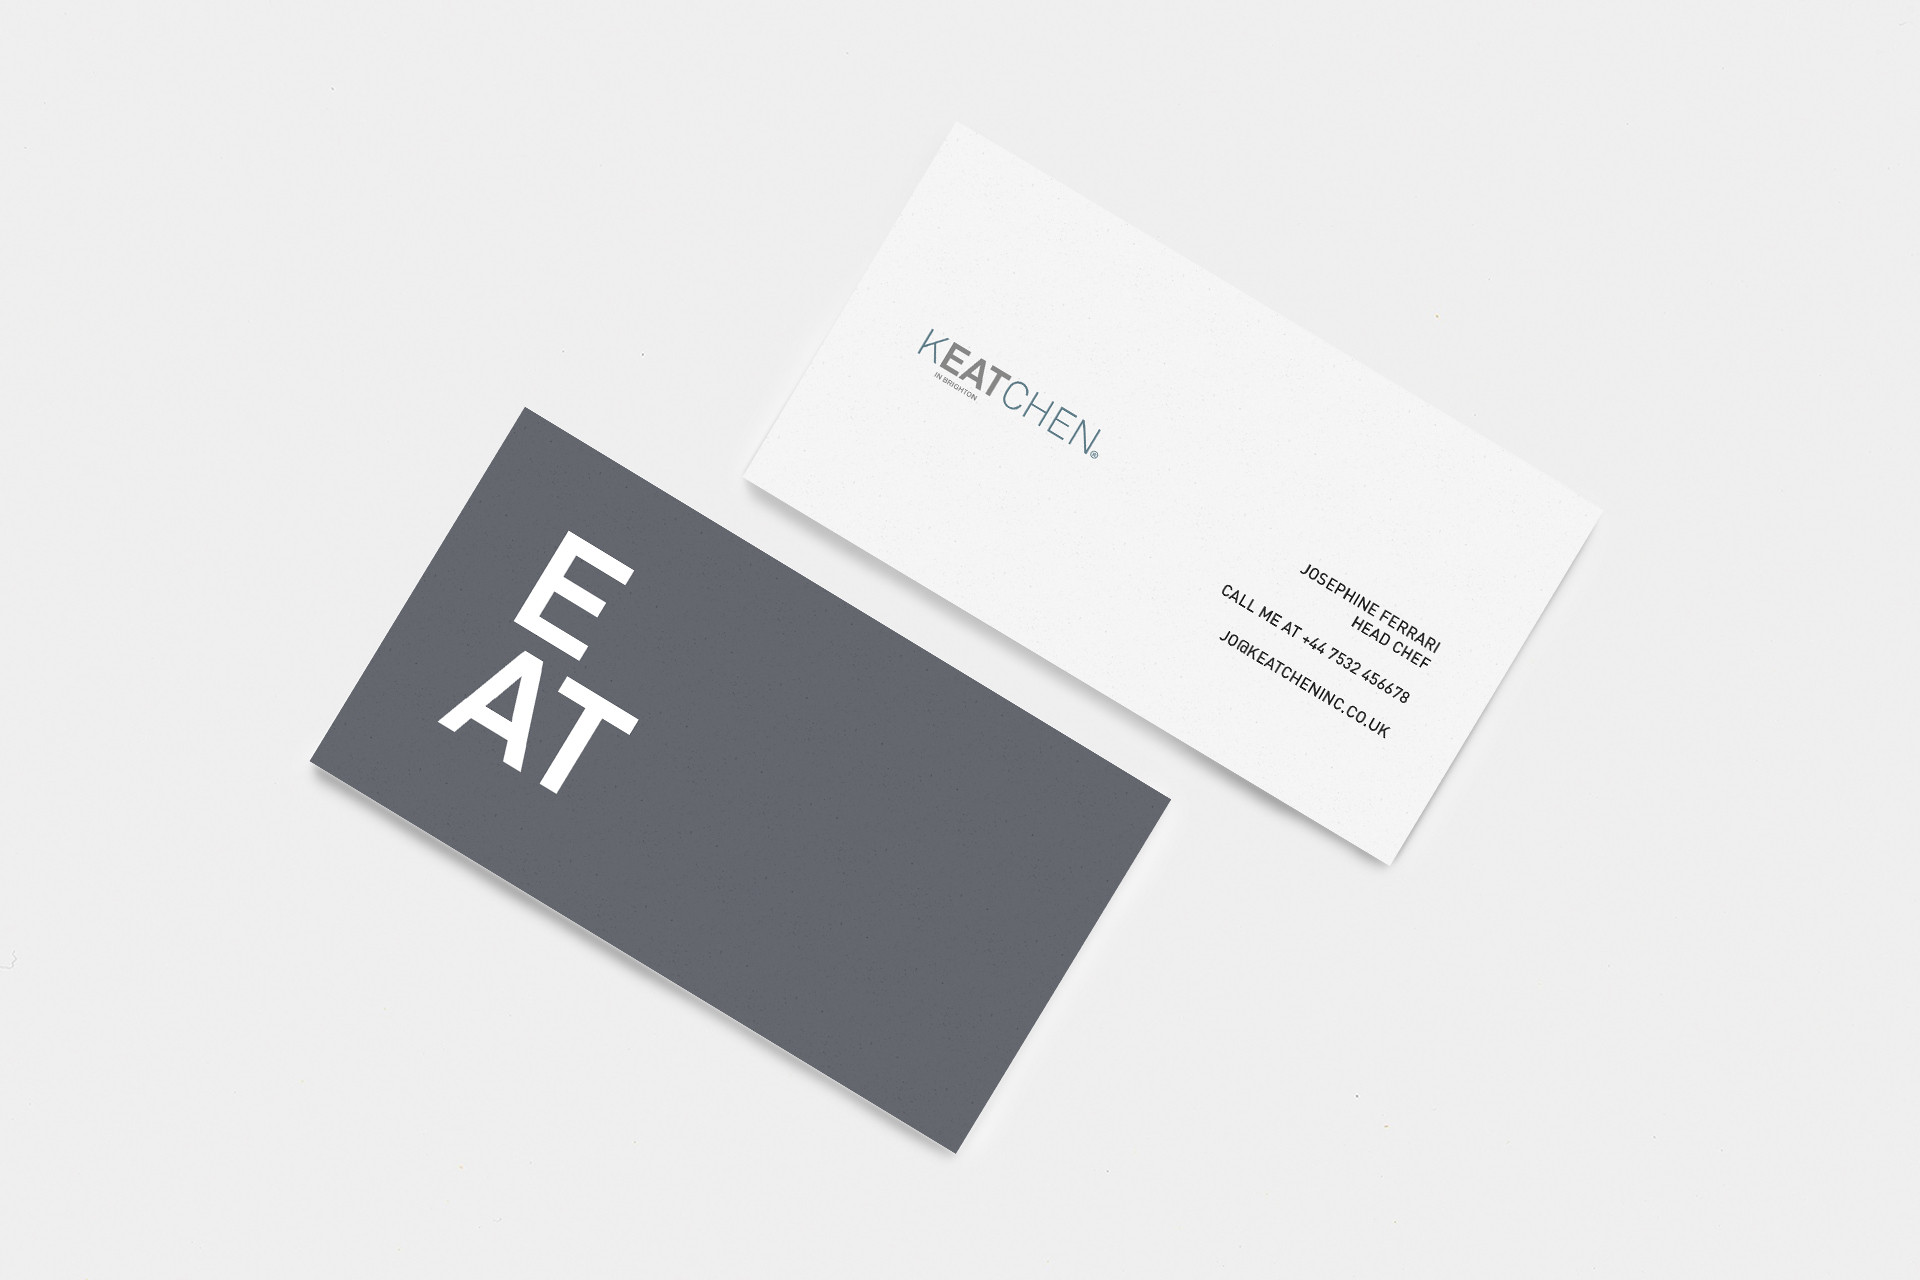 keatchen brighton business card.jpg